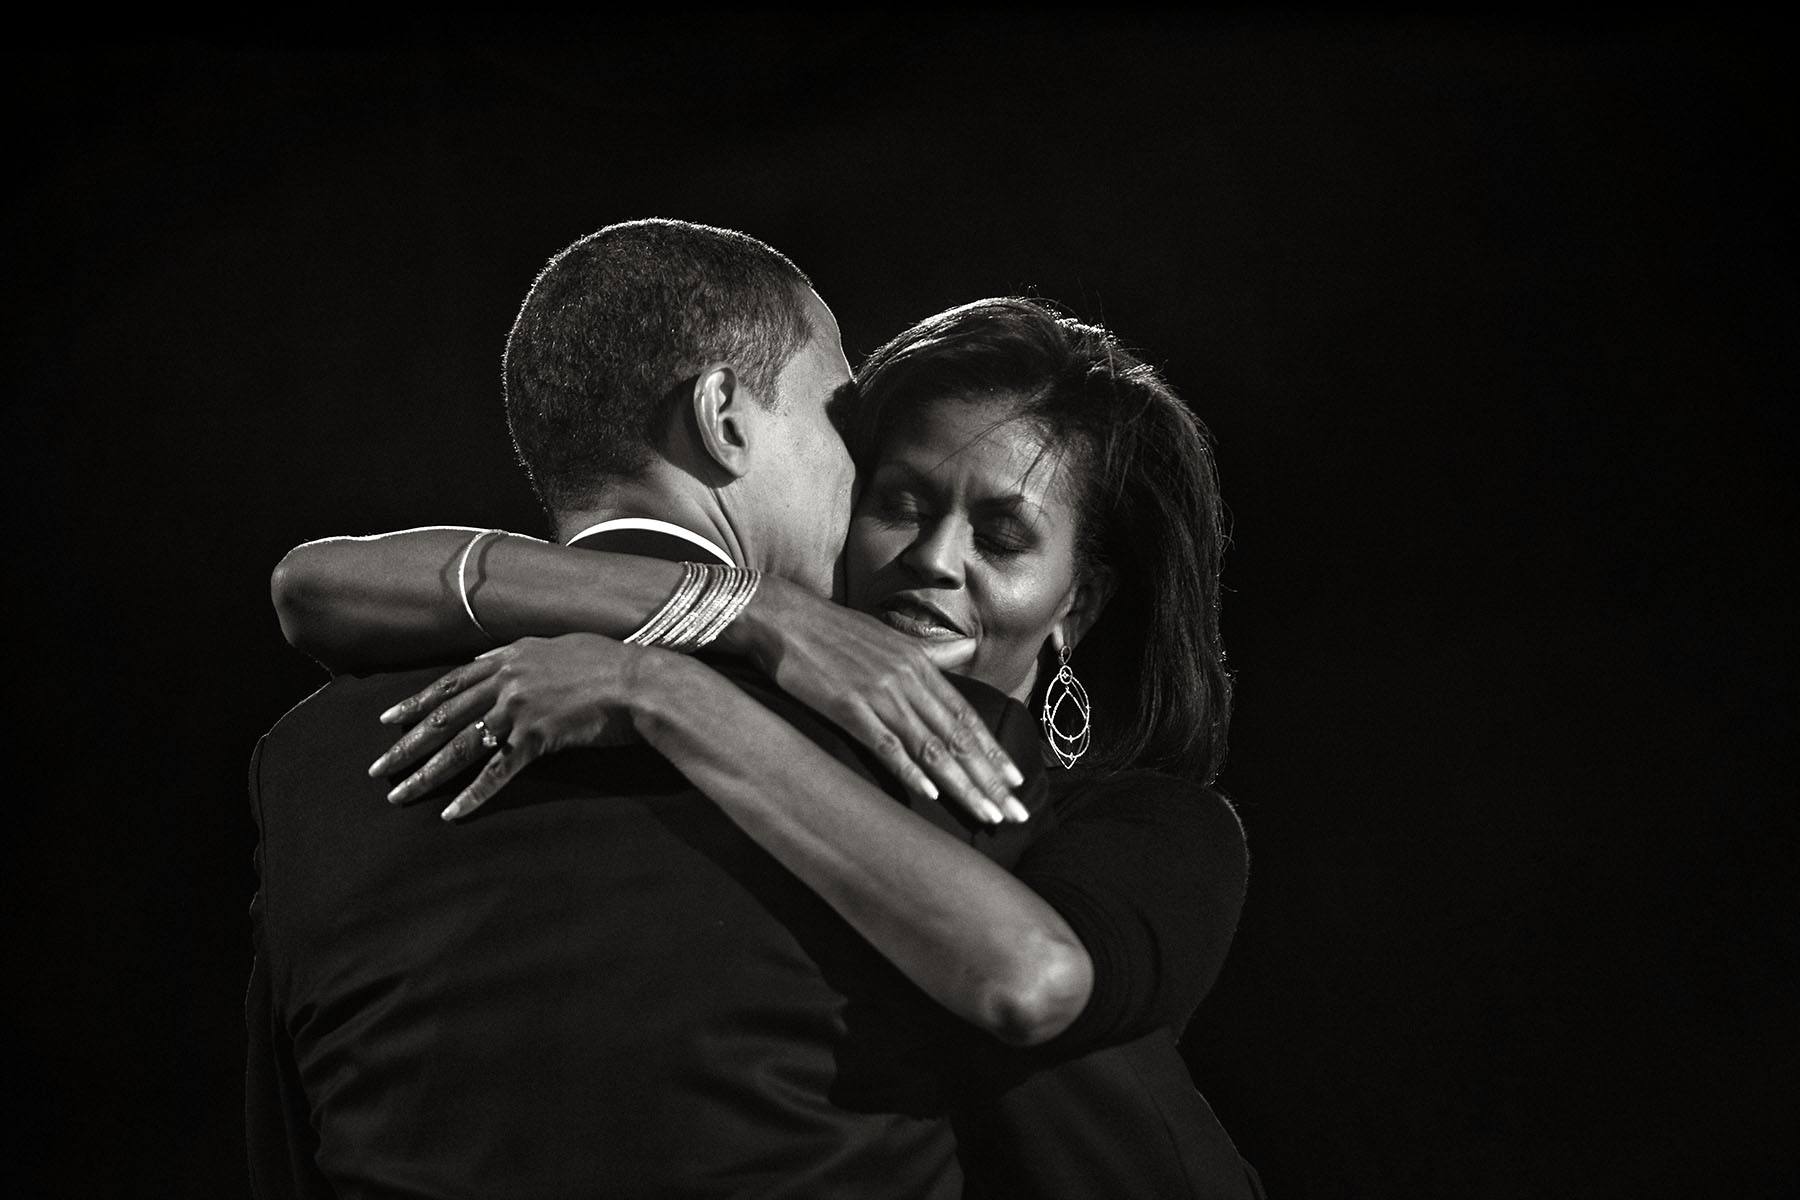 President-elect Senator Barack Obama hugs his wife Michelle during his election night rally in Chicago.Photo by Brooks Kraft/Corbis